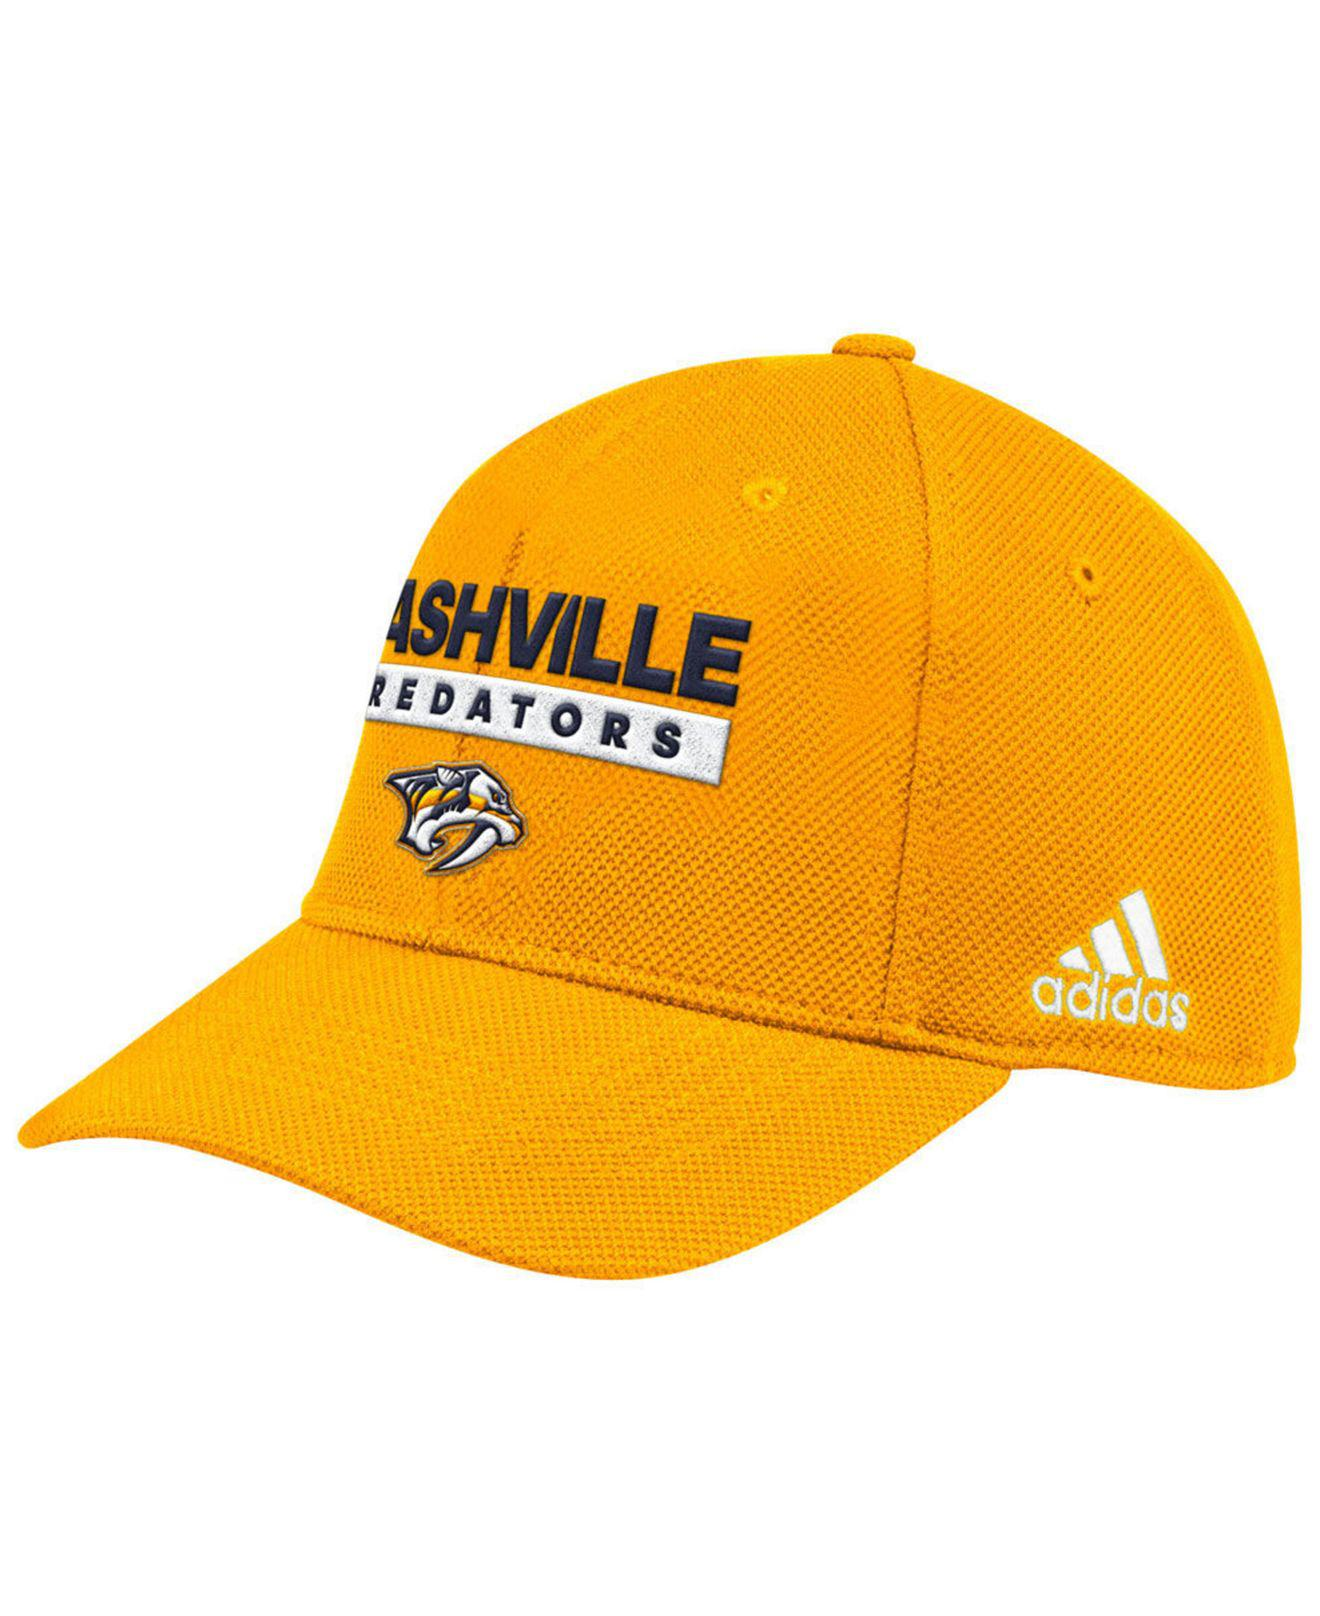 low priced 01822 fcaa7 ... promo code for adidas yellow nashville predators stanley cup playoff  patch cap for men lyst.